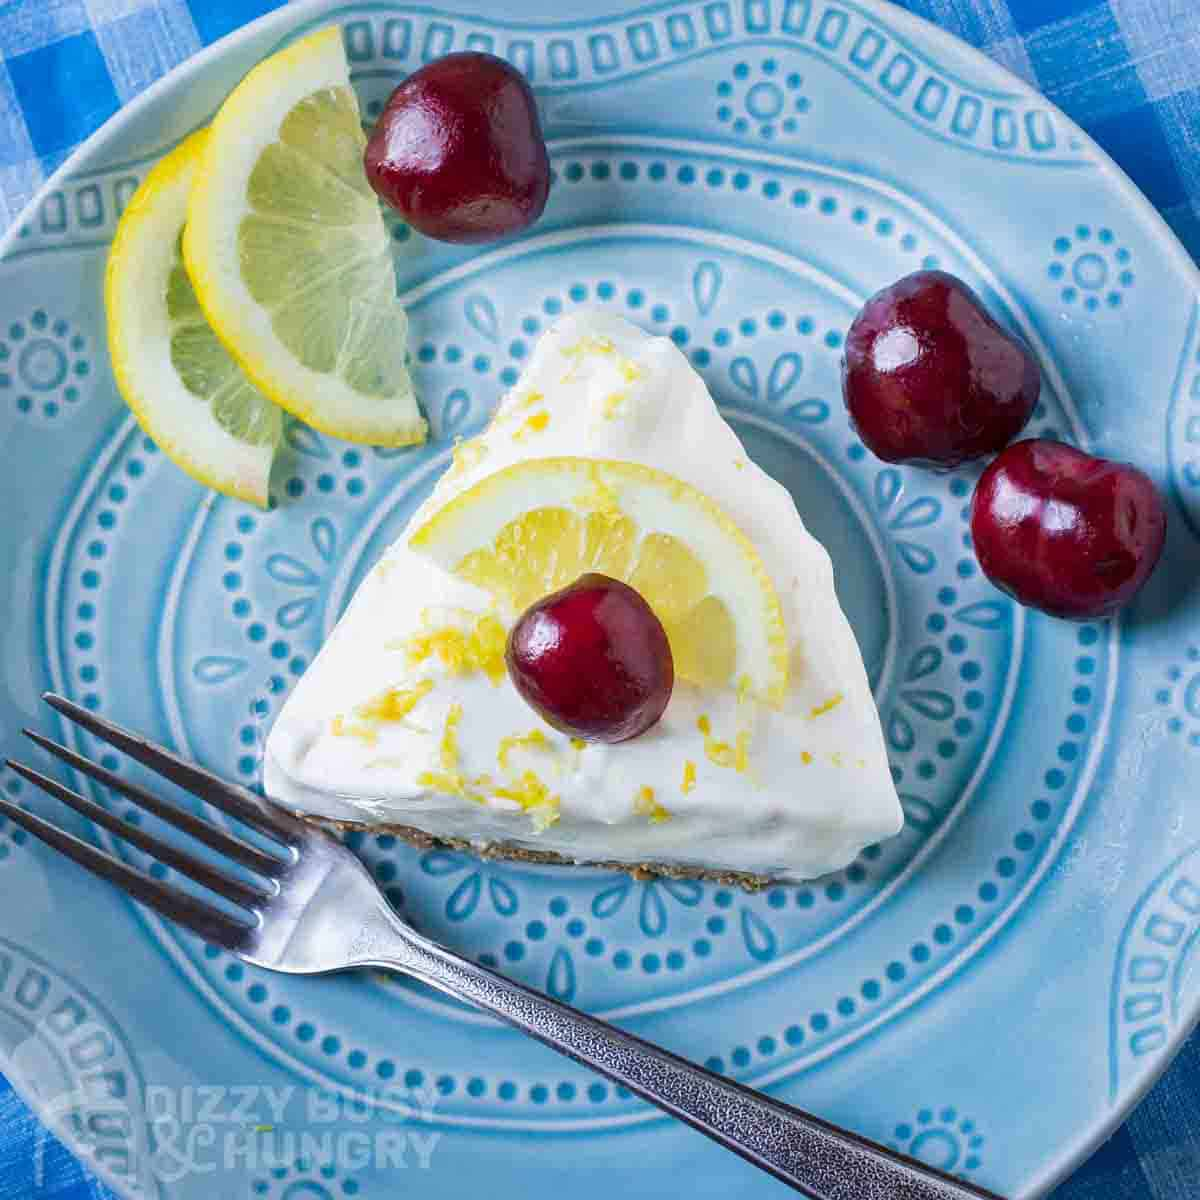 Overhead shot of a slice of lemon pie garnished with a whole cherry on a blue plate with a fork, lemon slices, and more cherries on the side.